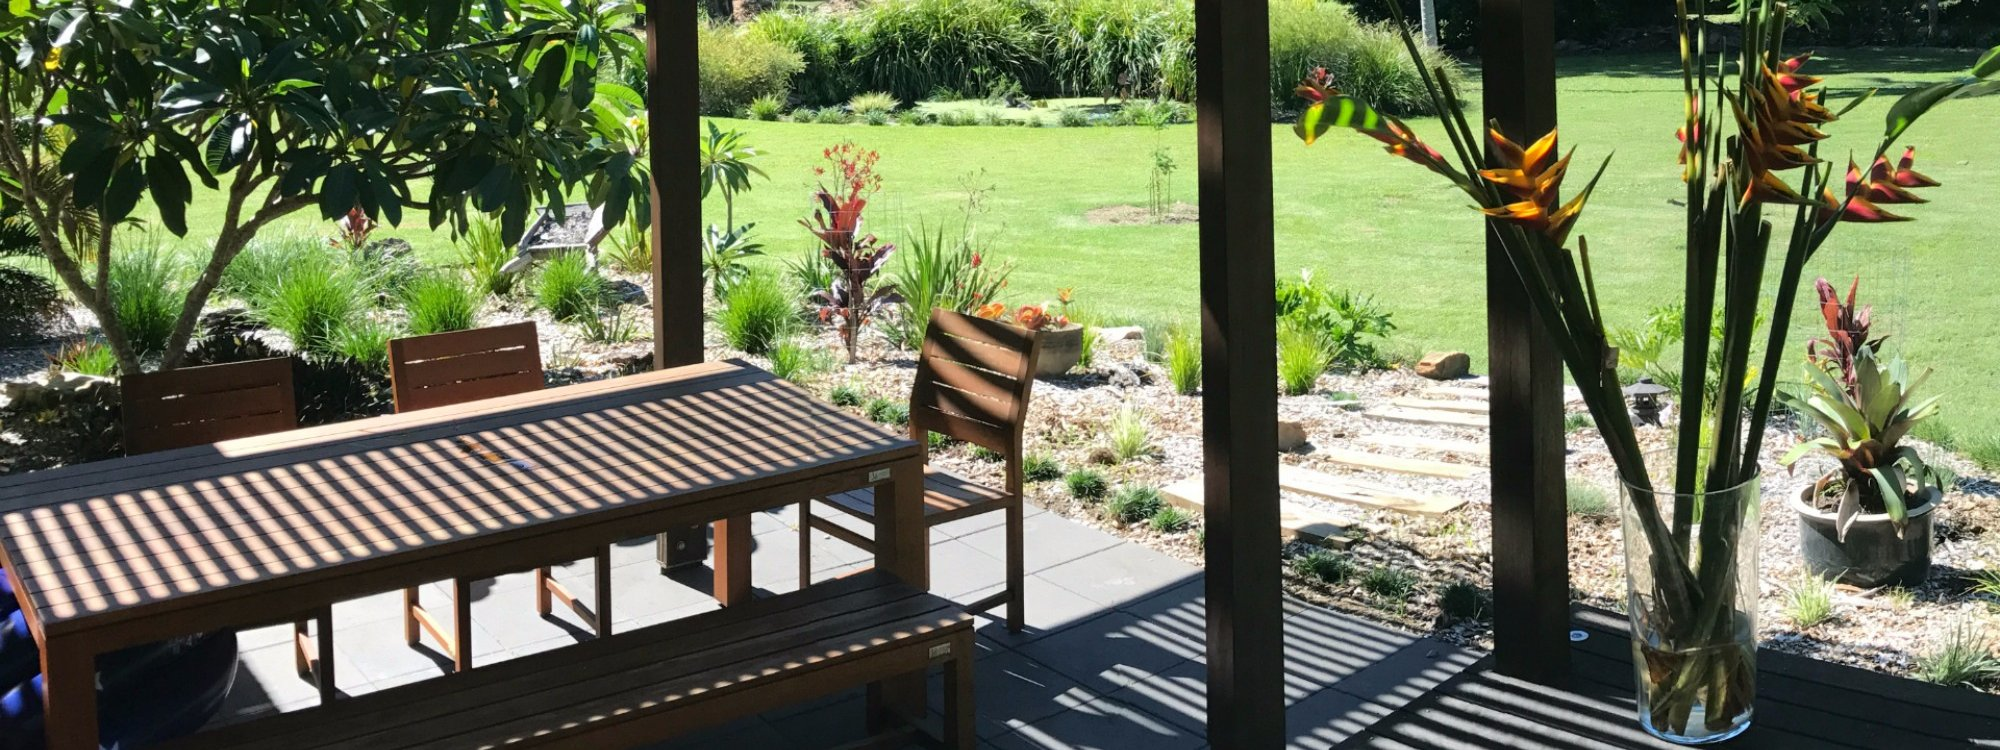 Shaded outdoor dining is located adjacent to the BBQ area and overlooks the water lily pond.